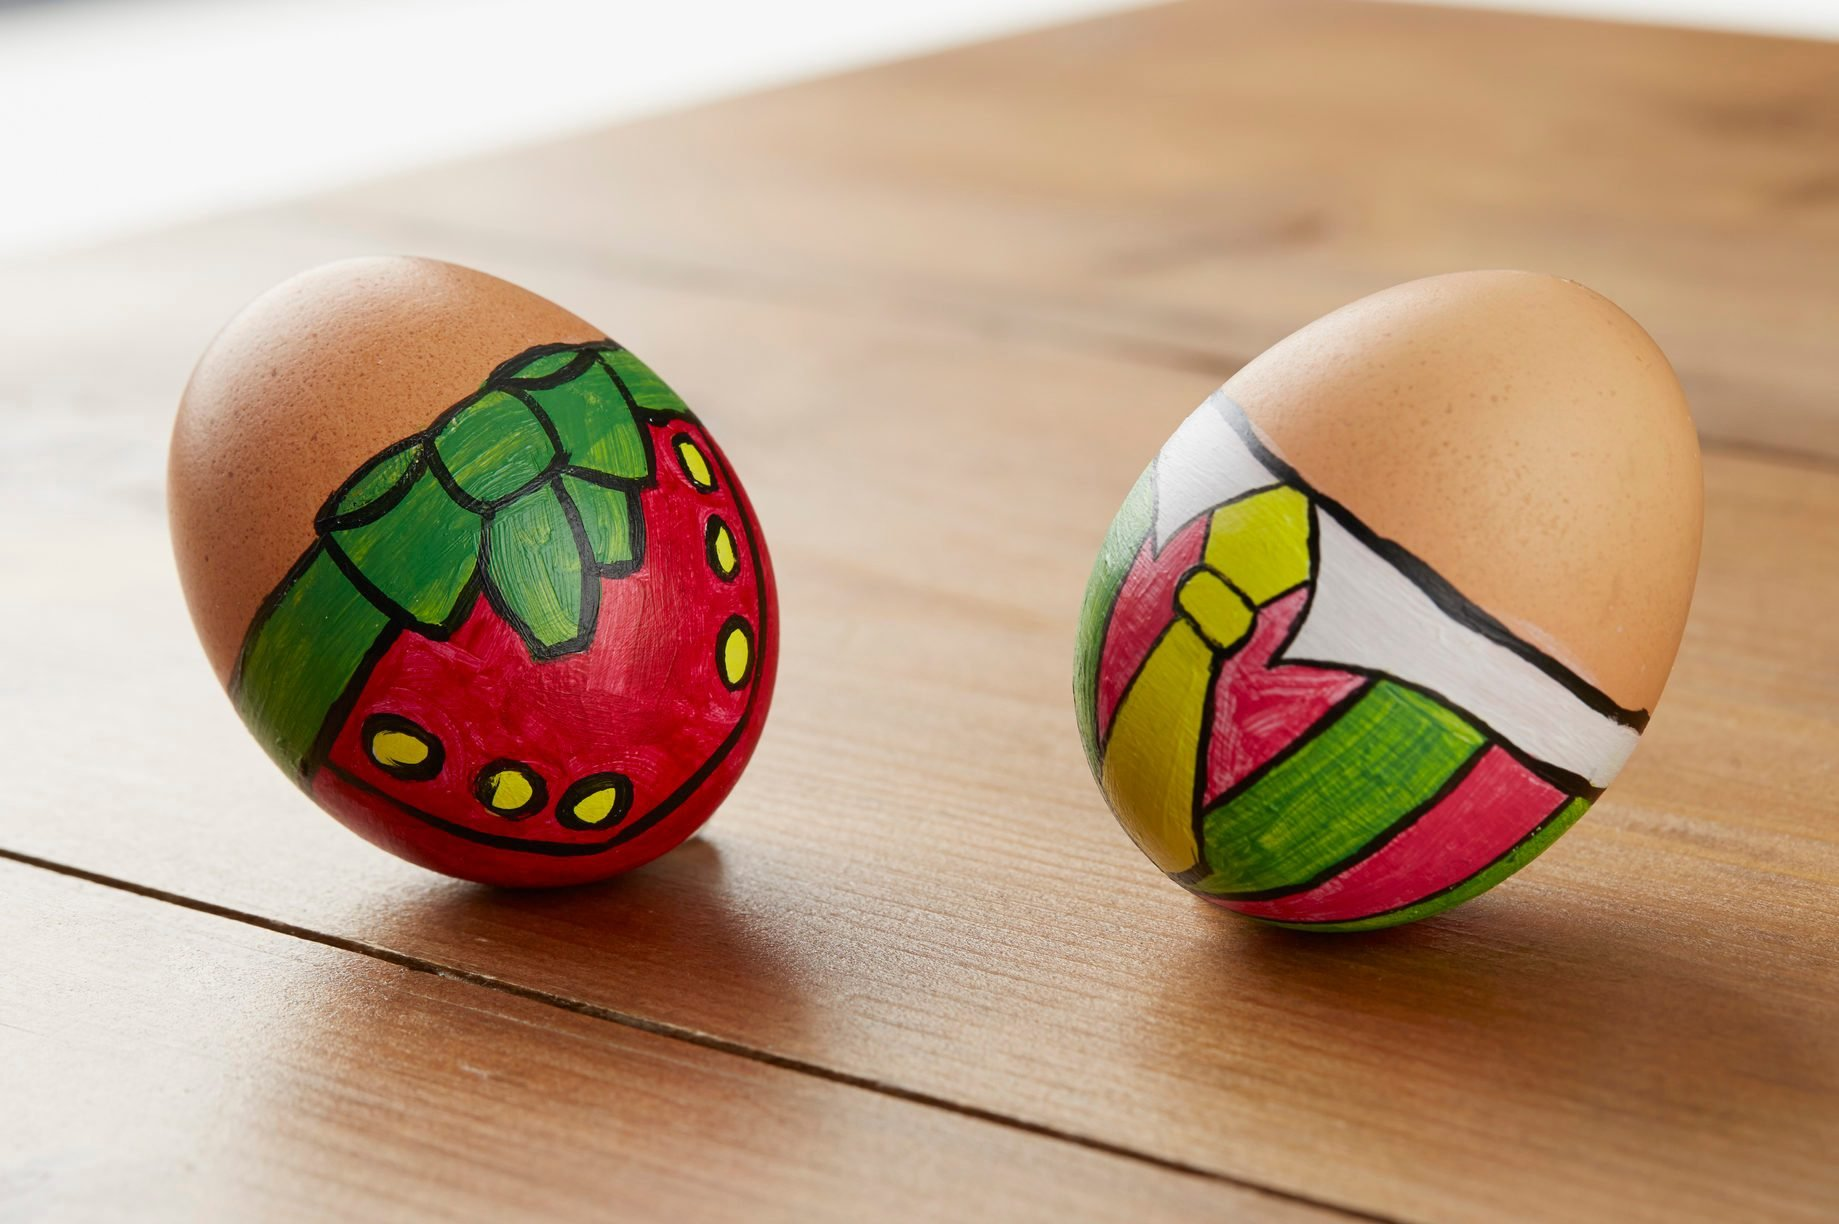 Painted easter egg business suit tie and bow